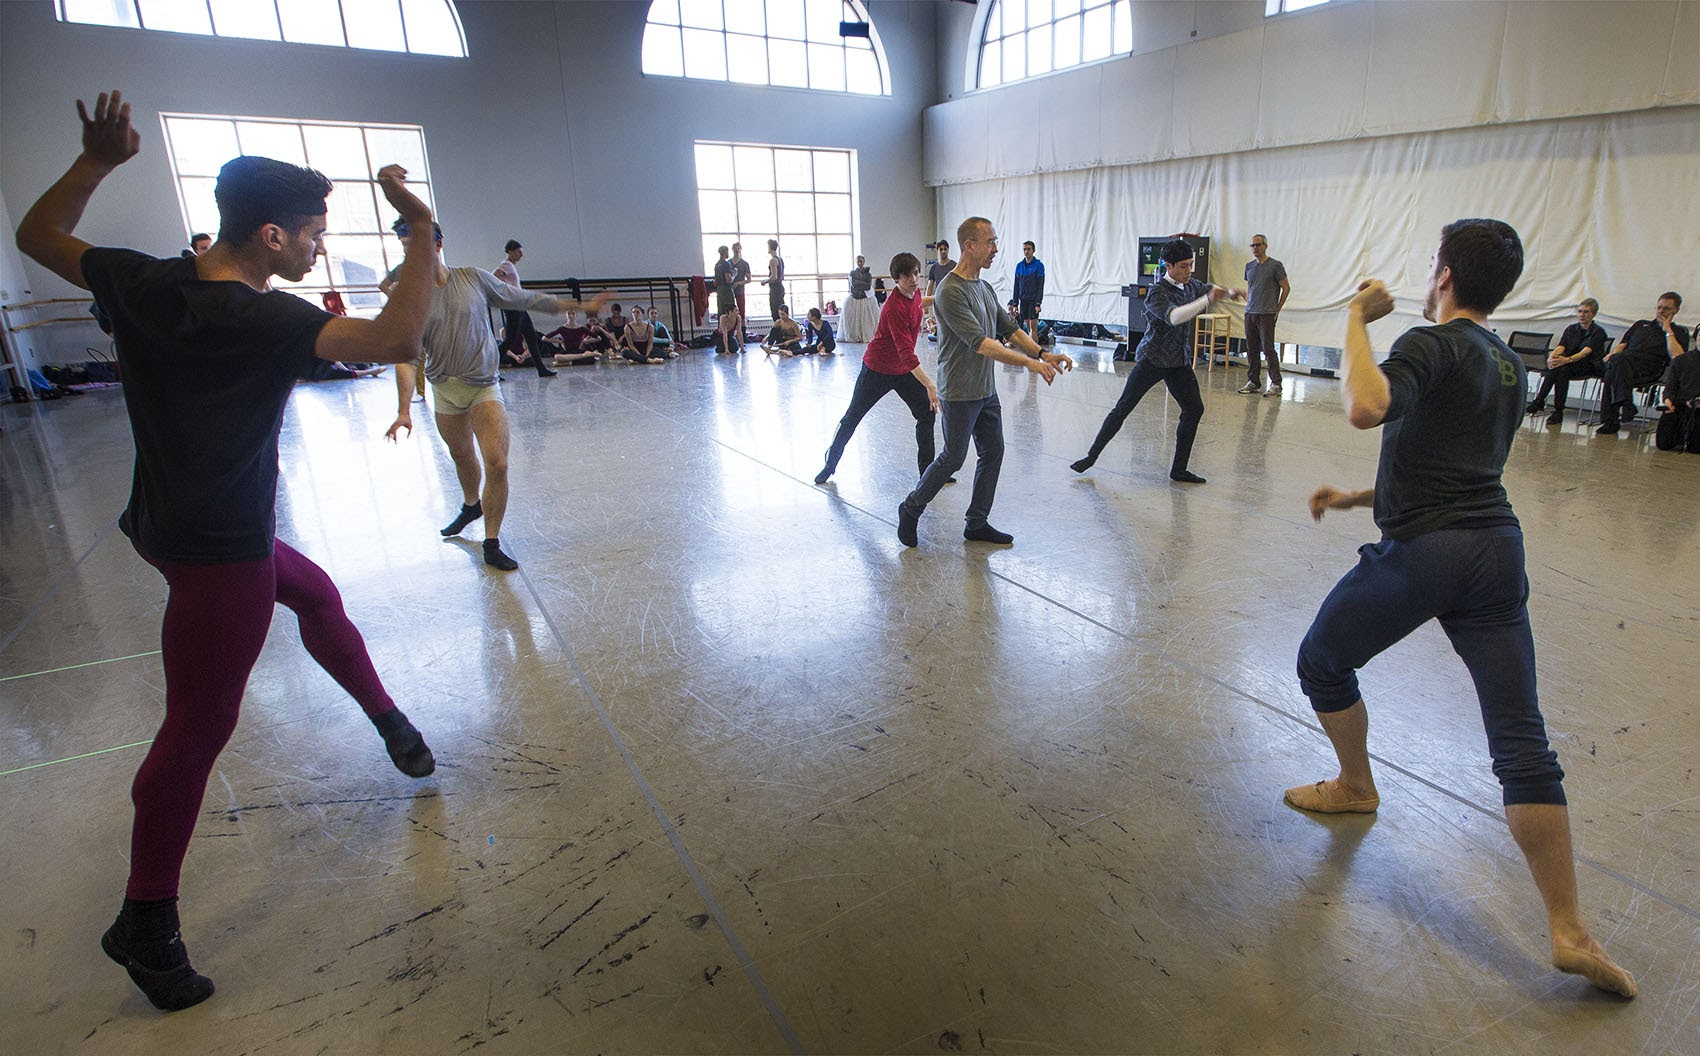 Forsythe guides the dancers through a rehearsal. (Jesse Costa/WBUR)